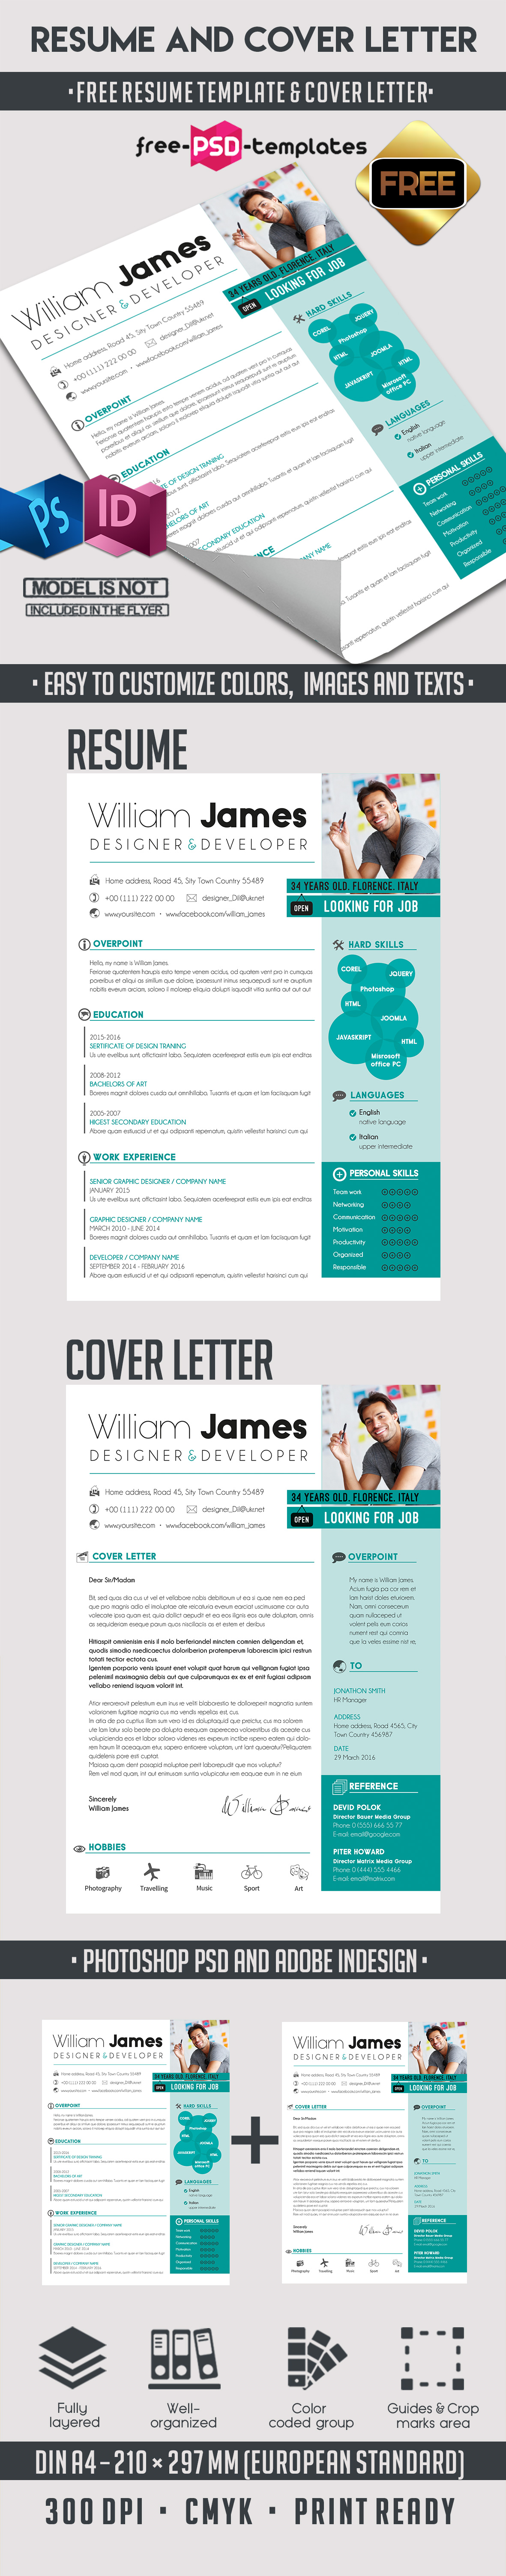 Free resume template cover letter free psd templates bigpreviewfree resume template cover letter madrichimfo Image collections